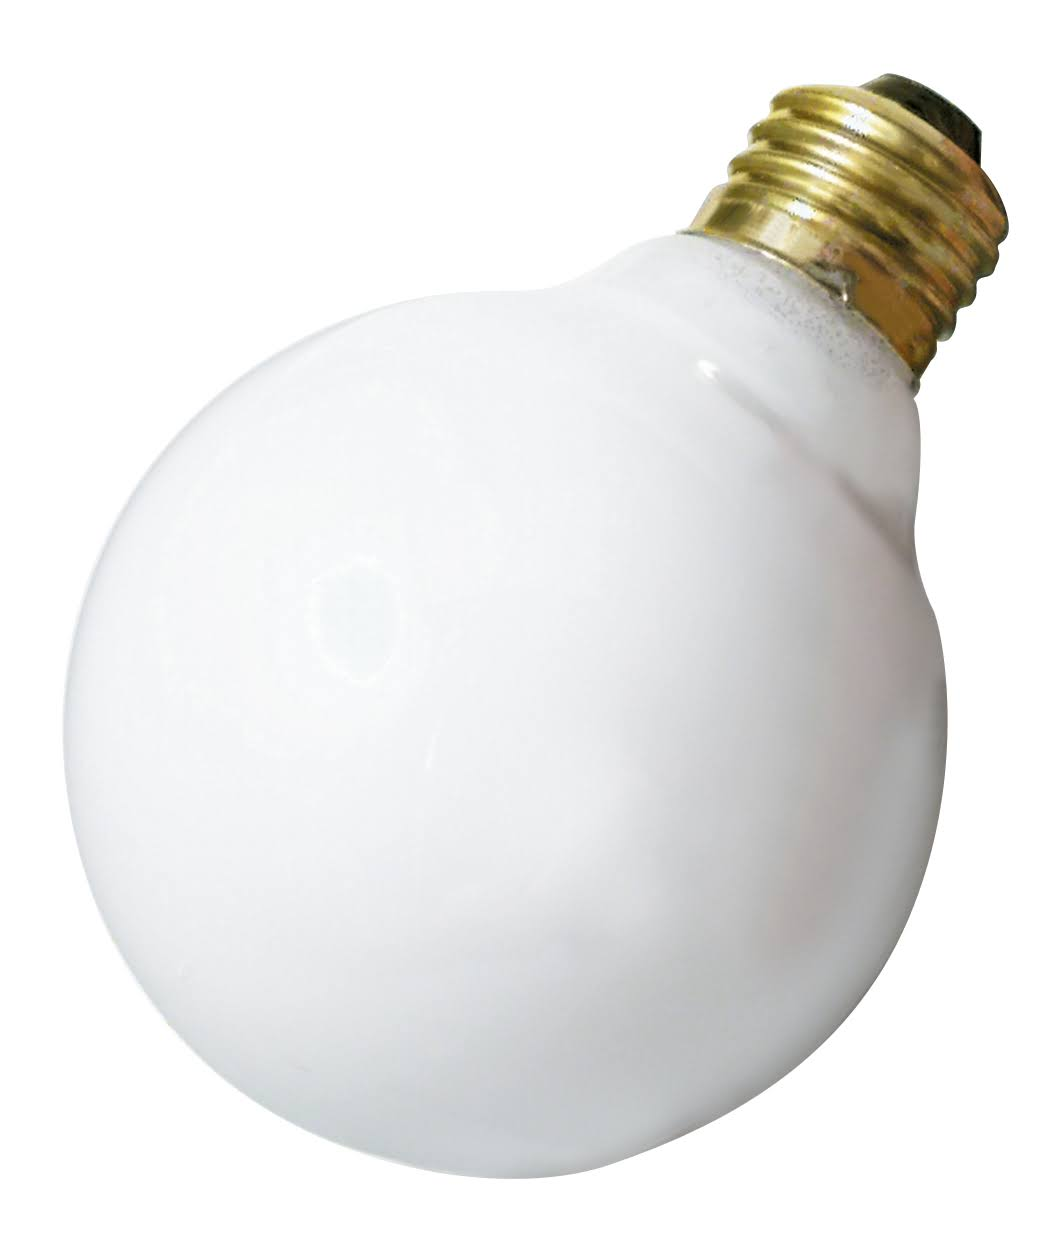 Satco S3441 Decorative Incandescent Globe Light - White, 40w